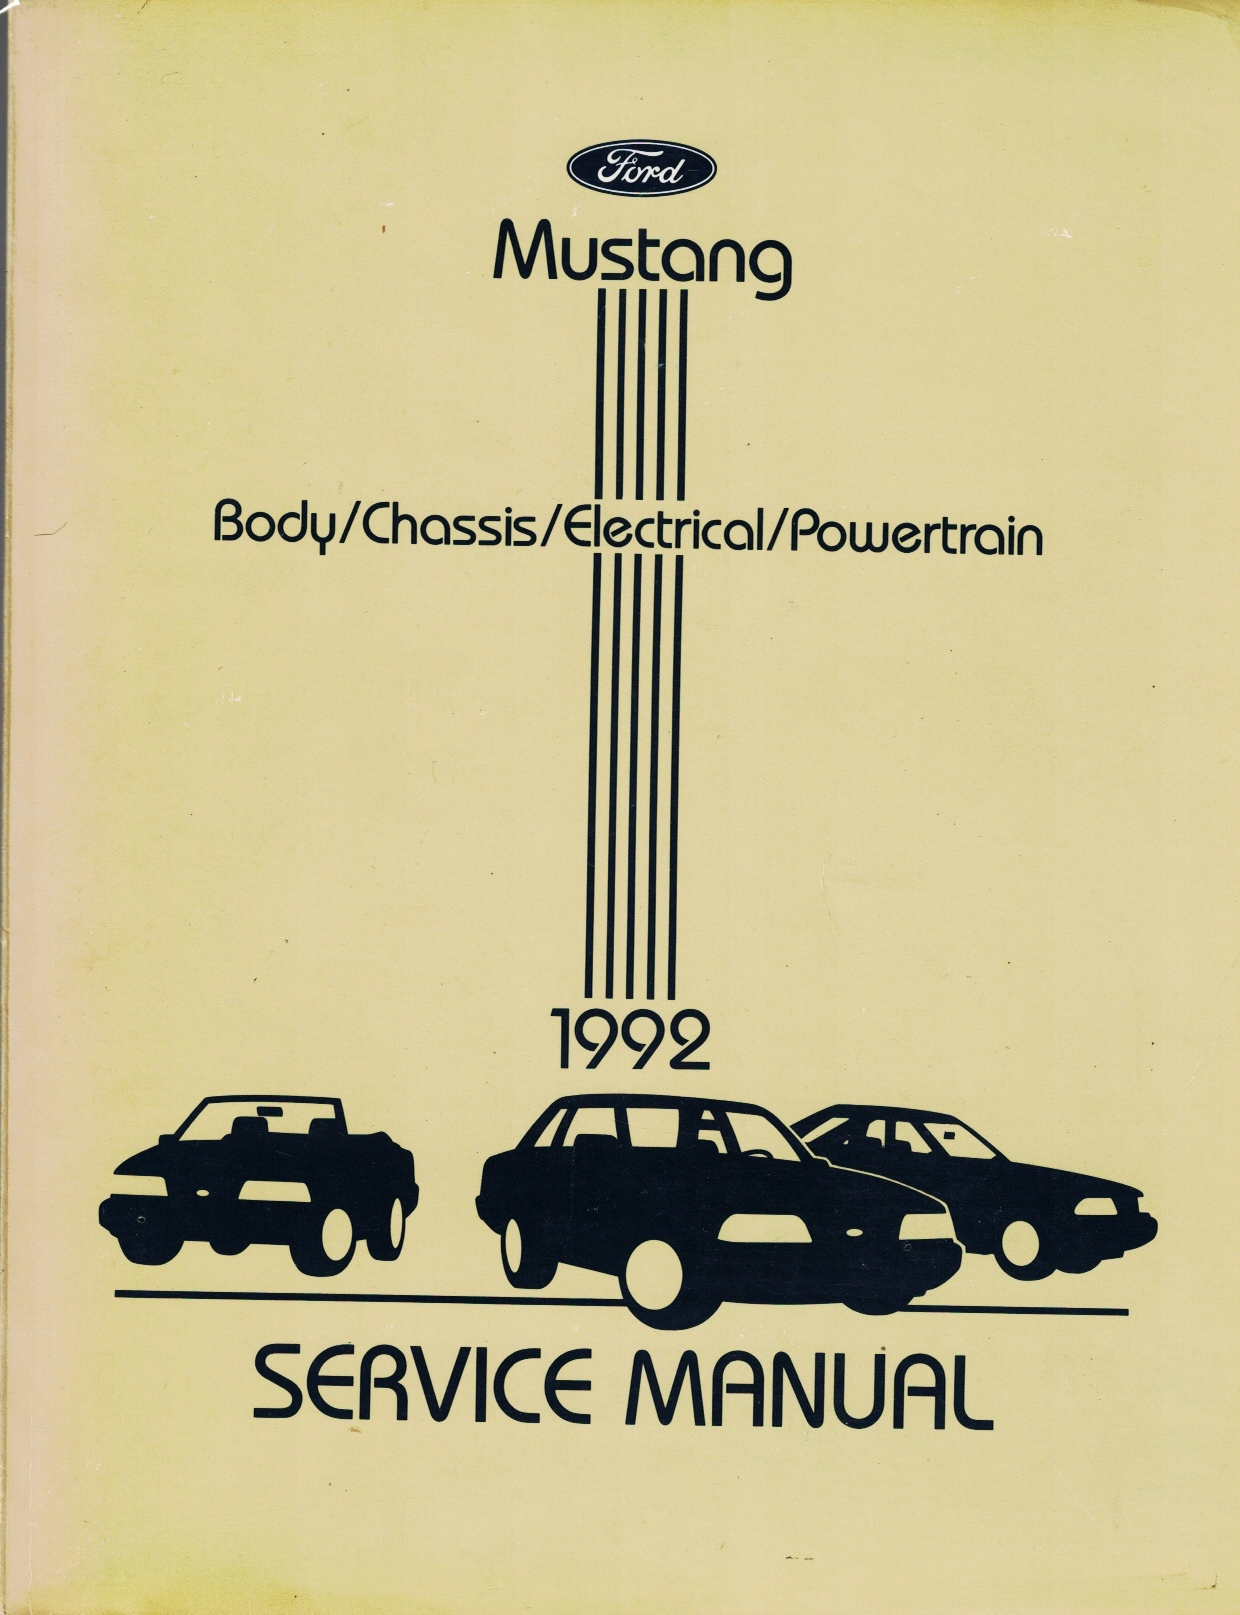 Image for Ford 1992 Mustang Service Manual: Body / Chassis / Electrical / Powertrain